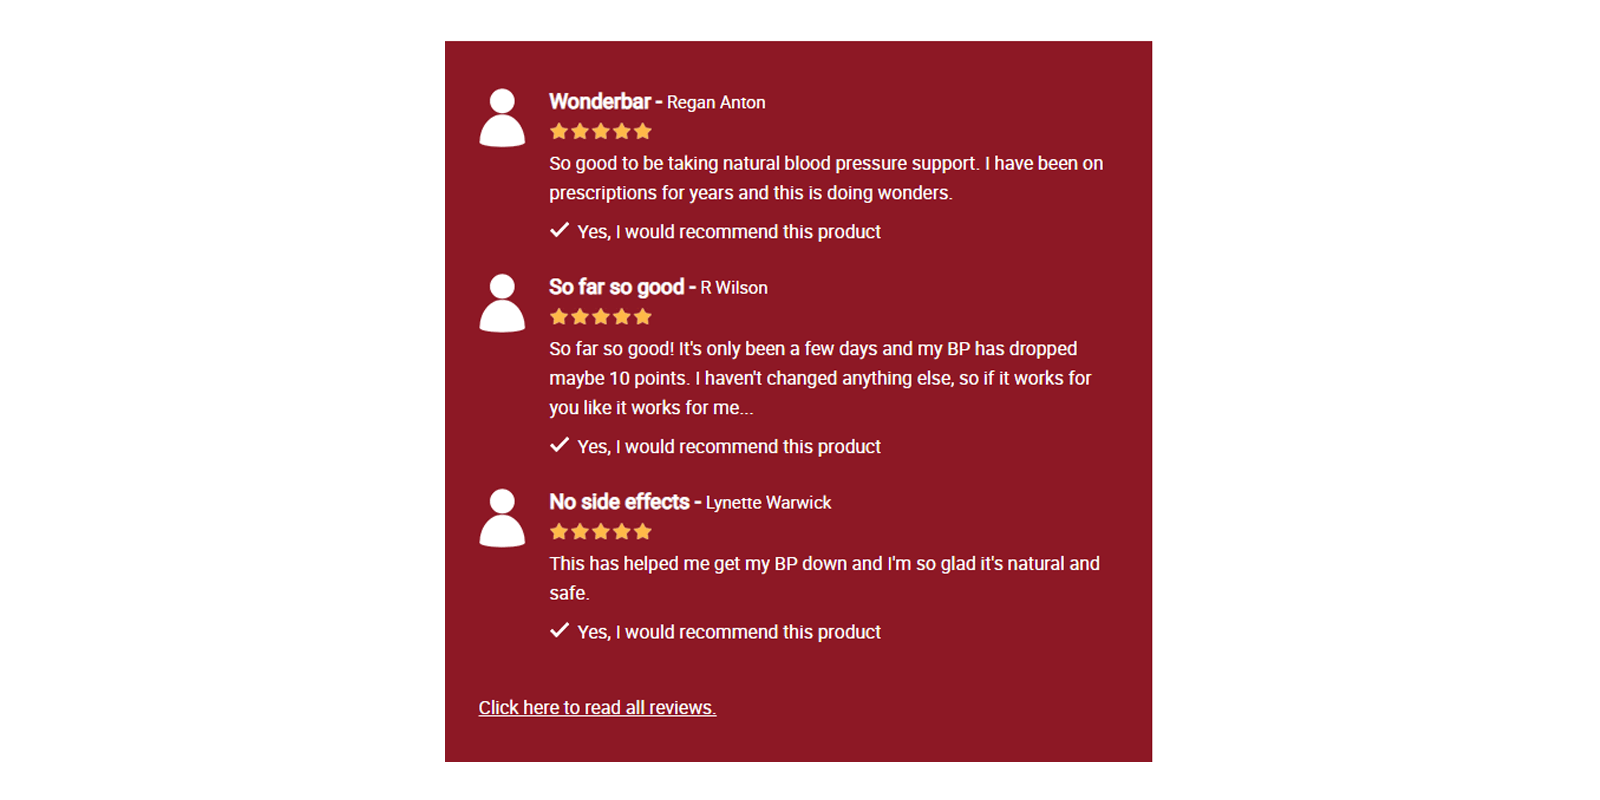 Blood Pressure Support customer reviews